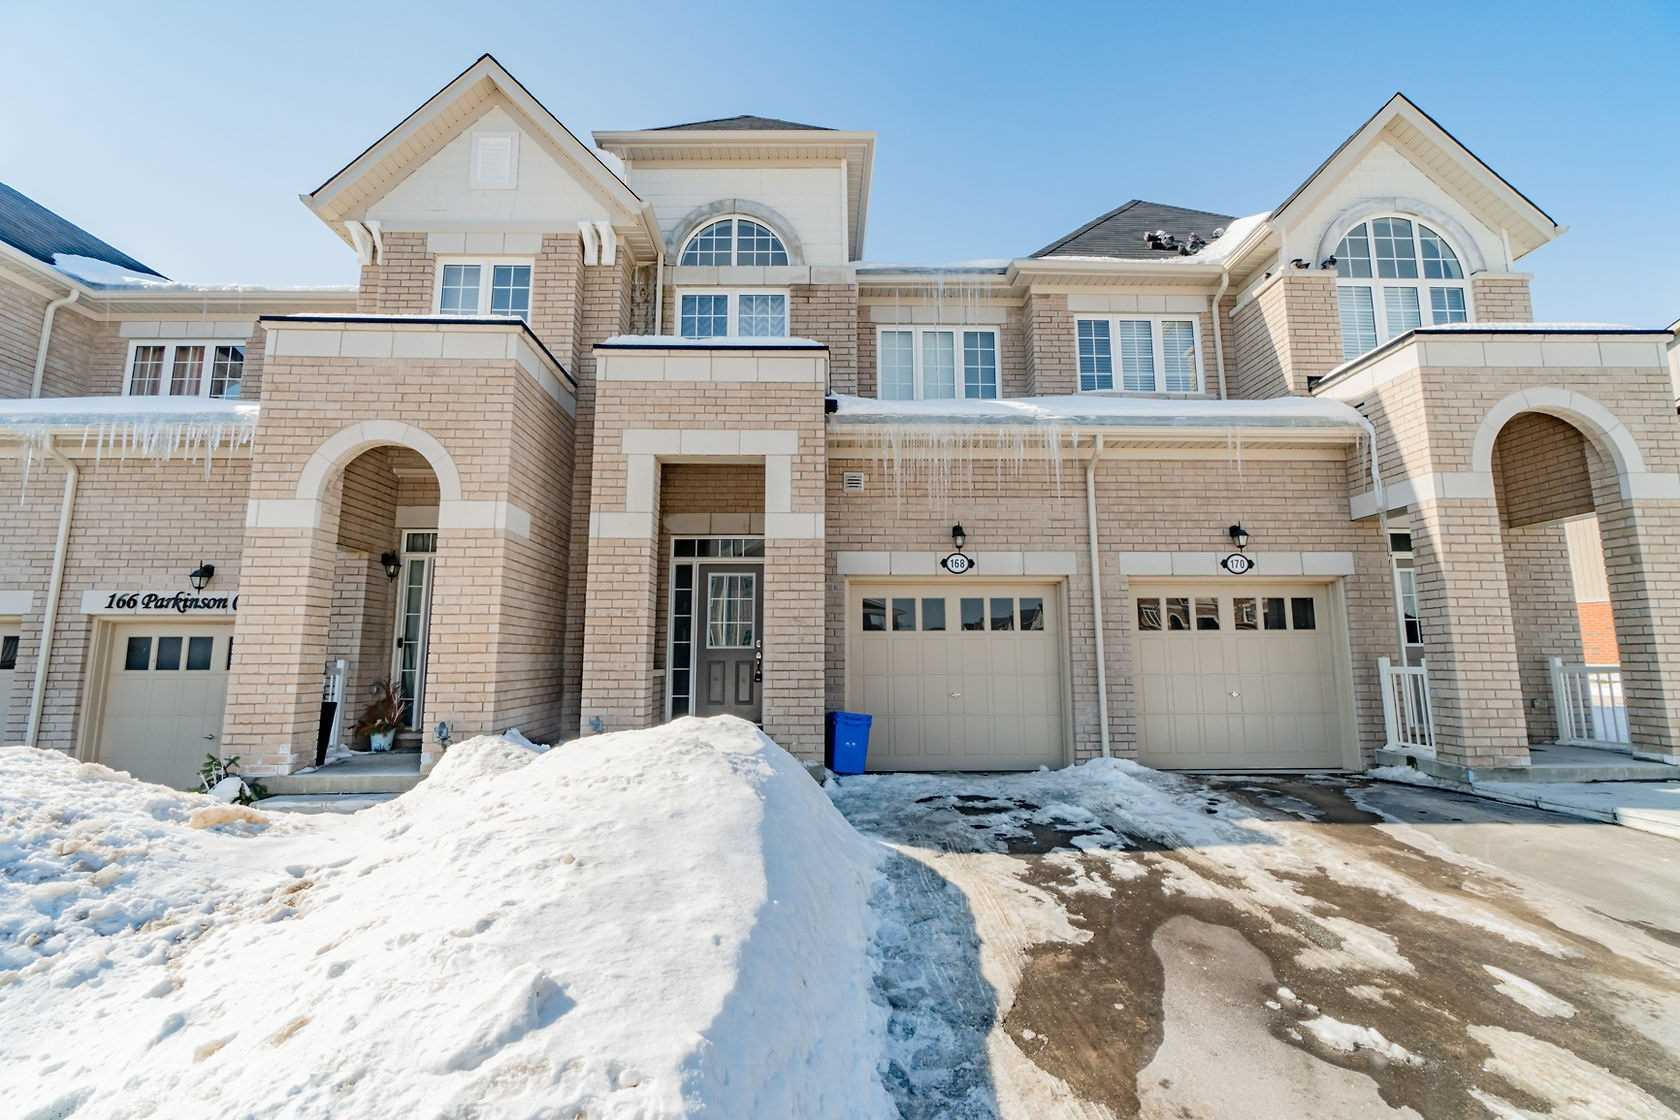 pictures of house for sale MLS: W4701934 located at 168 Parkinson Cres, Orangeville L9W1L3